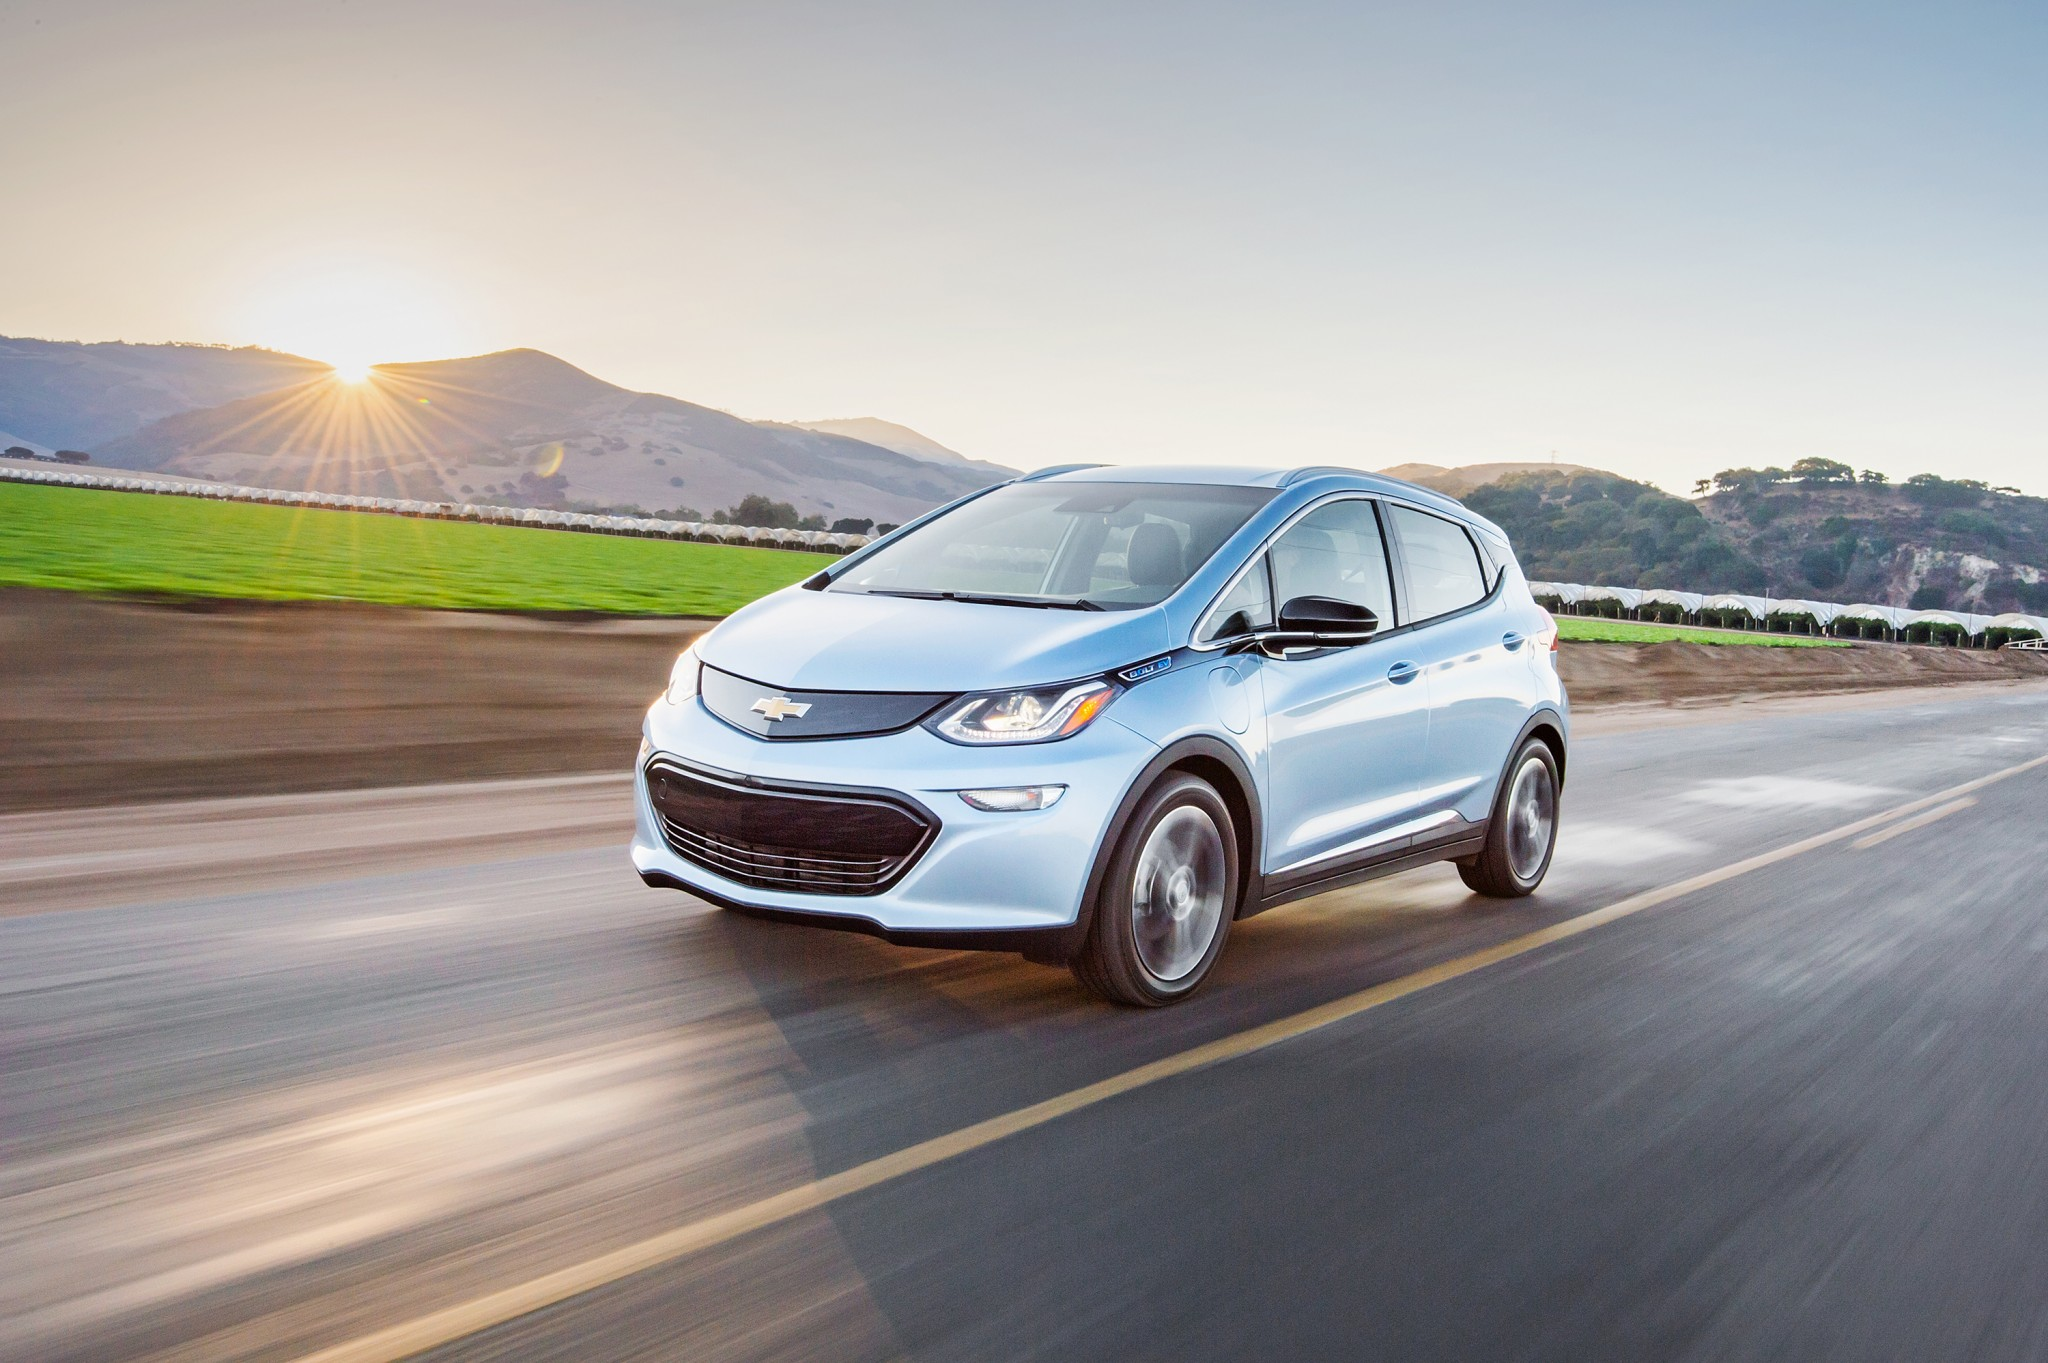 2017 Chevrolet Bolt Review Changer For Electric Cars